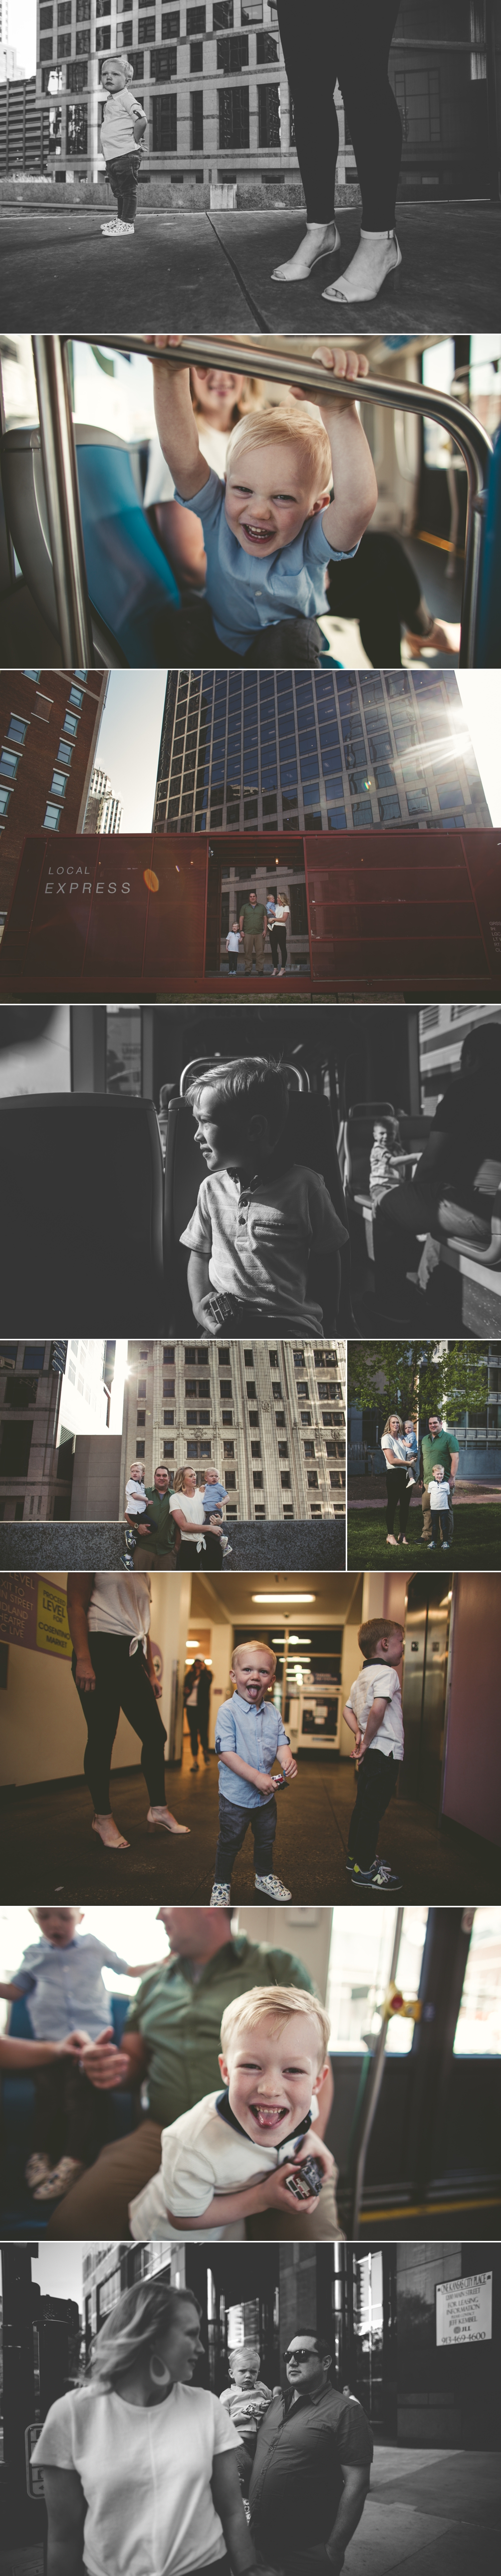 jason_domingues_photography_best_kansas_city_photographer_downtown_family_lifestyle_session_kc1.jpg